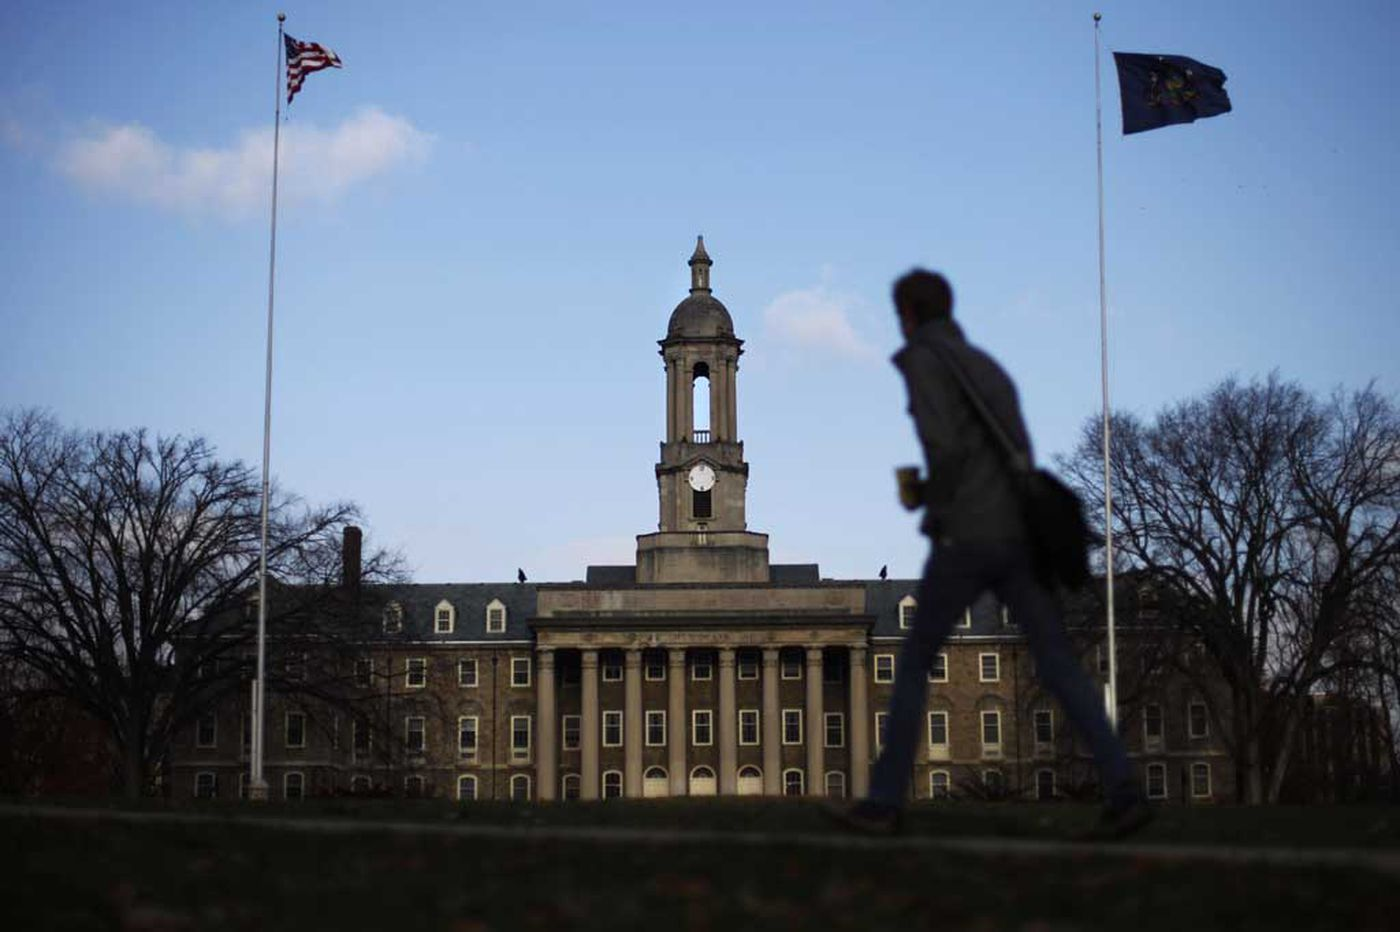 Police investigate 'inappropriate touching' at Penn State